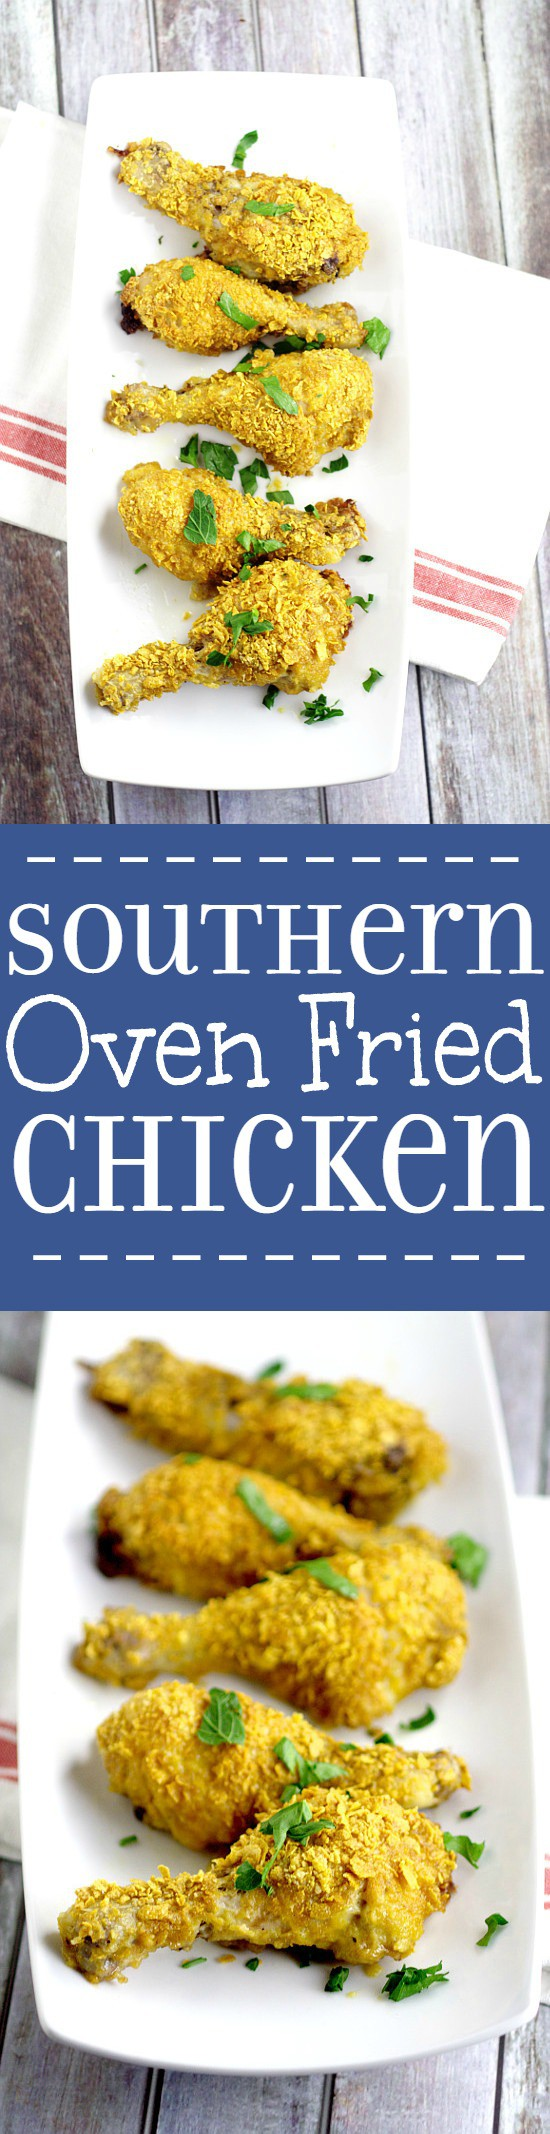 Southern Oven Fried Chicken for an easy family dinner idea. Quick prep and easy to make, this authentic Southern Oven-Fried Chicken is the perfect family dinner. Crunchy, juicy flavorful breaded chicken baked in the oven. This looks amazing!